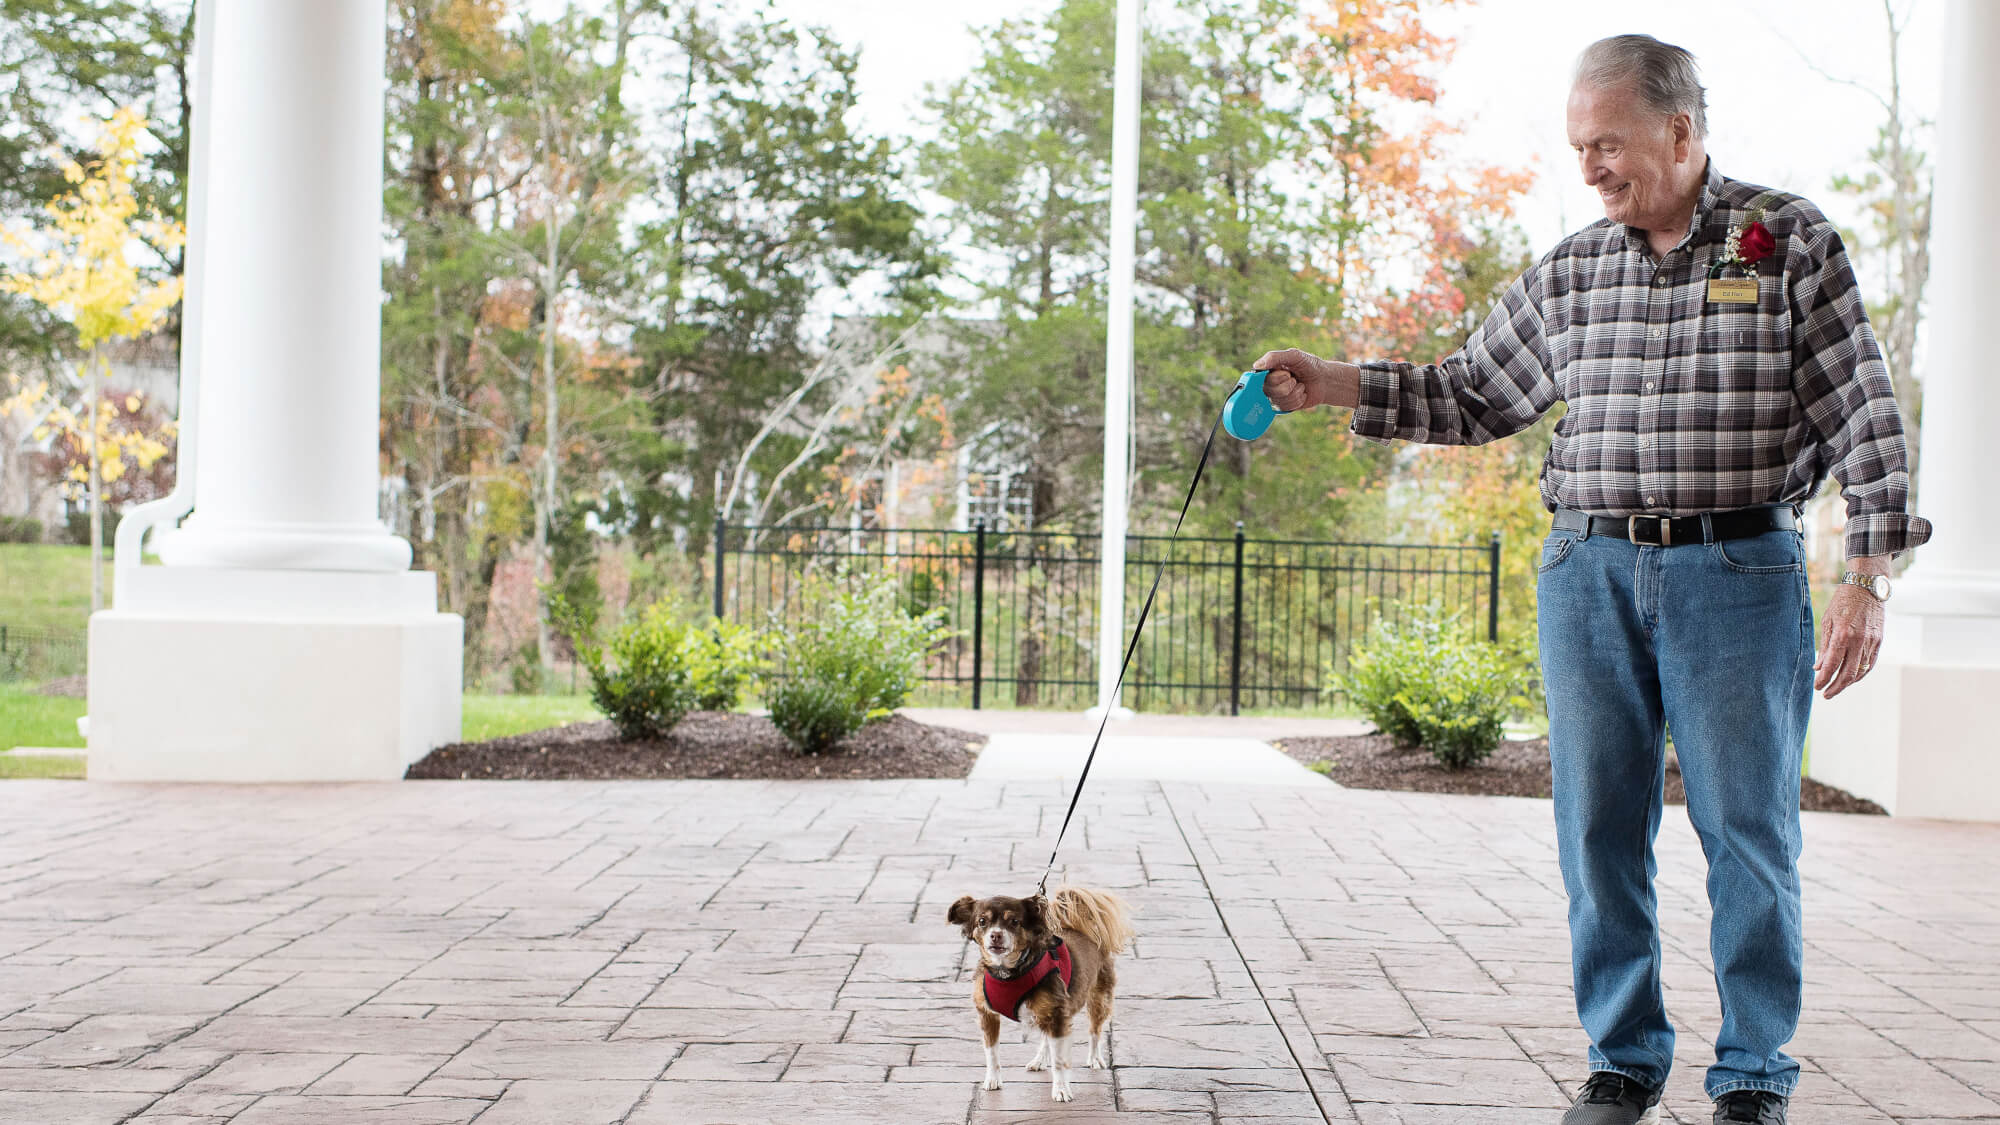 Pets are warmly welcomed at Ashwood Square.